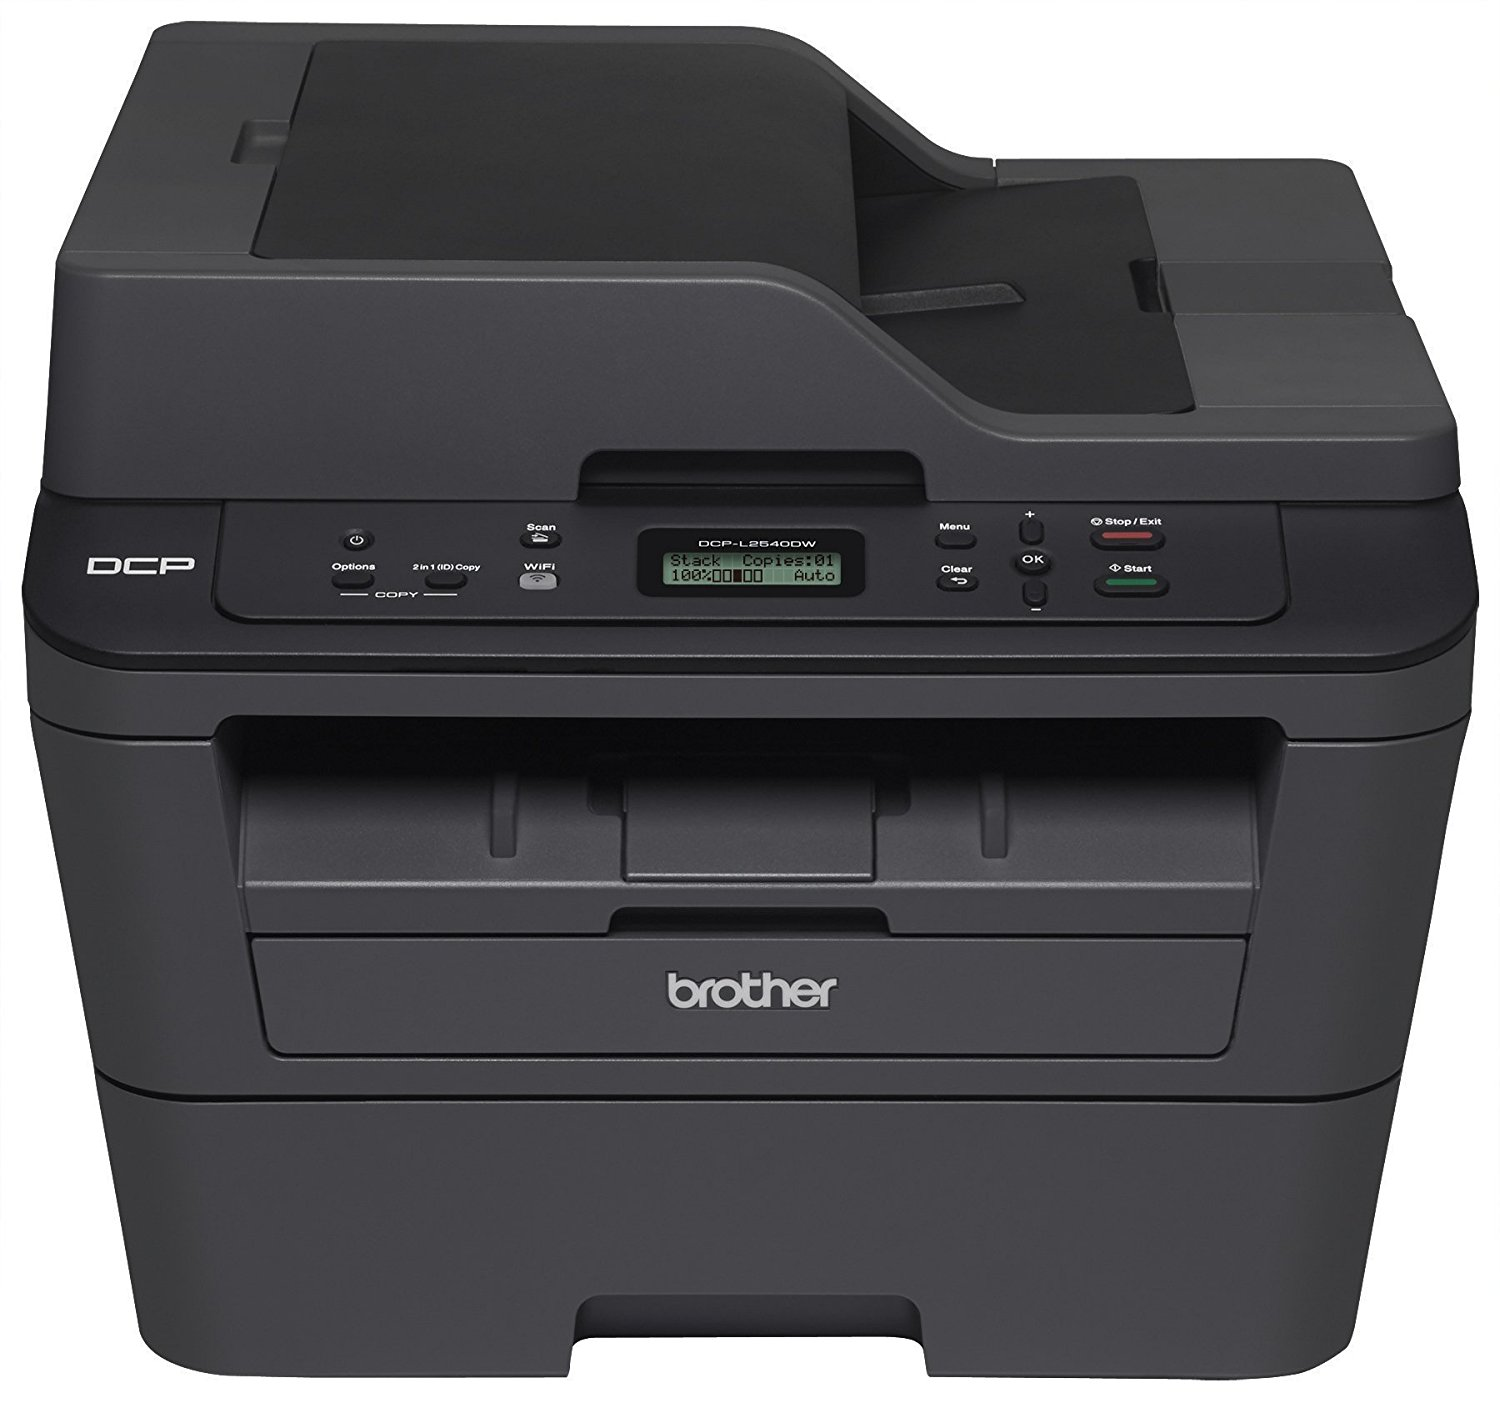 BROTHER DCP-L2540DW Multi-function Wireless Monochrome Laser Printer